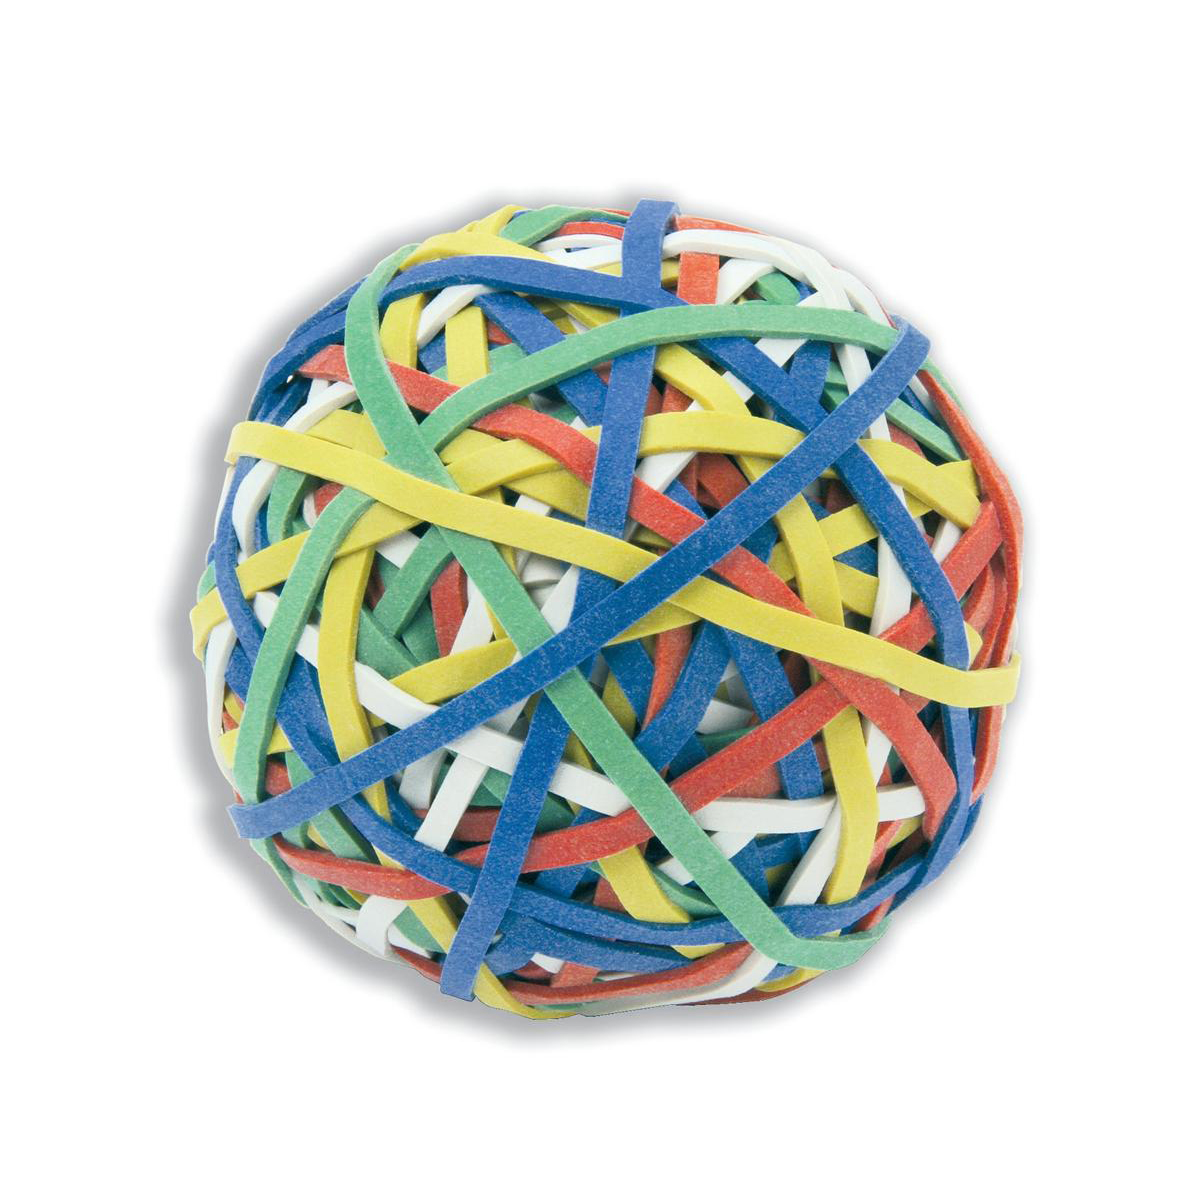 5 Star Office Rubber Band Ball of 200 Bands Assorted